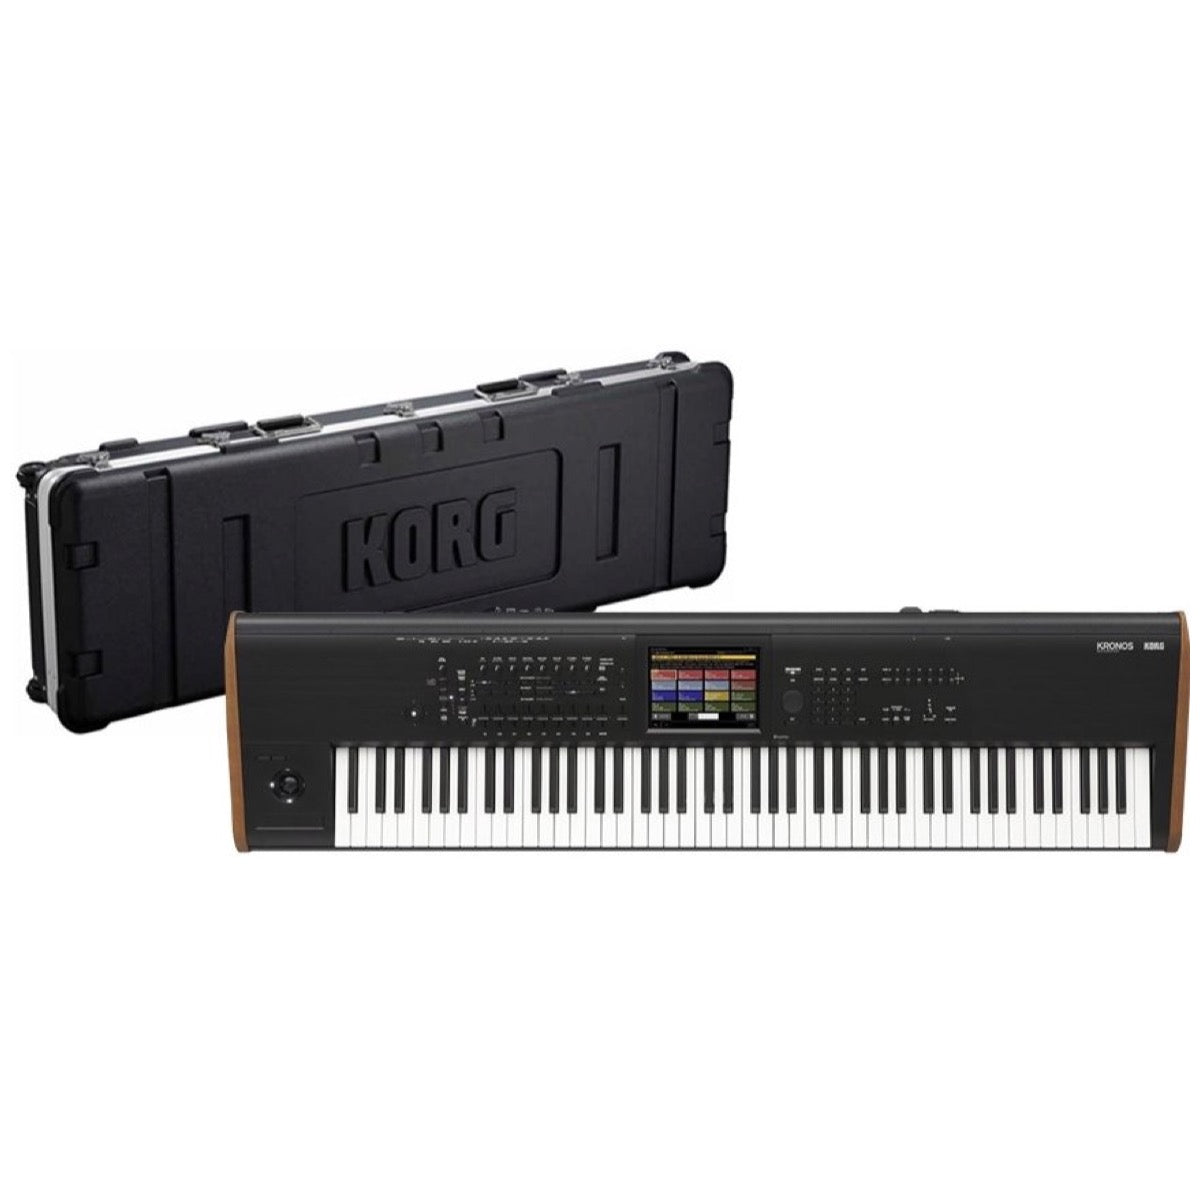 Korg Kronos 8 Music Workstation Keyboard, 88-Key, Black, with Case